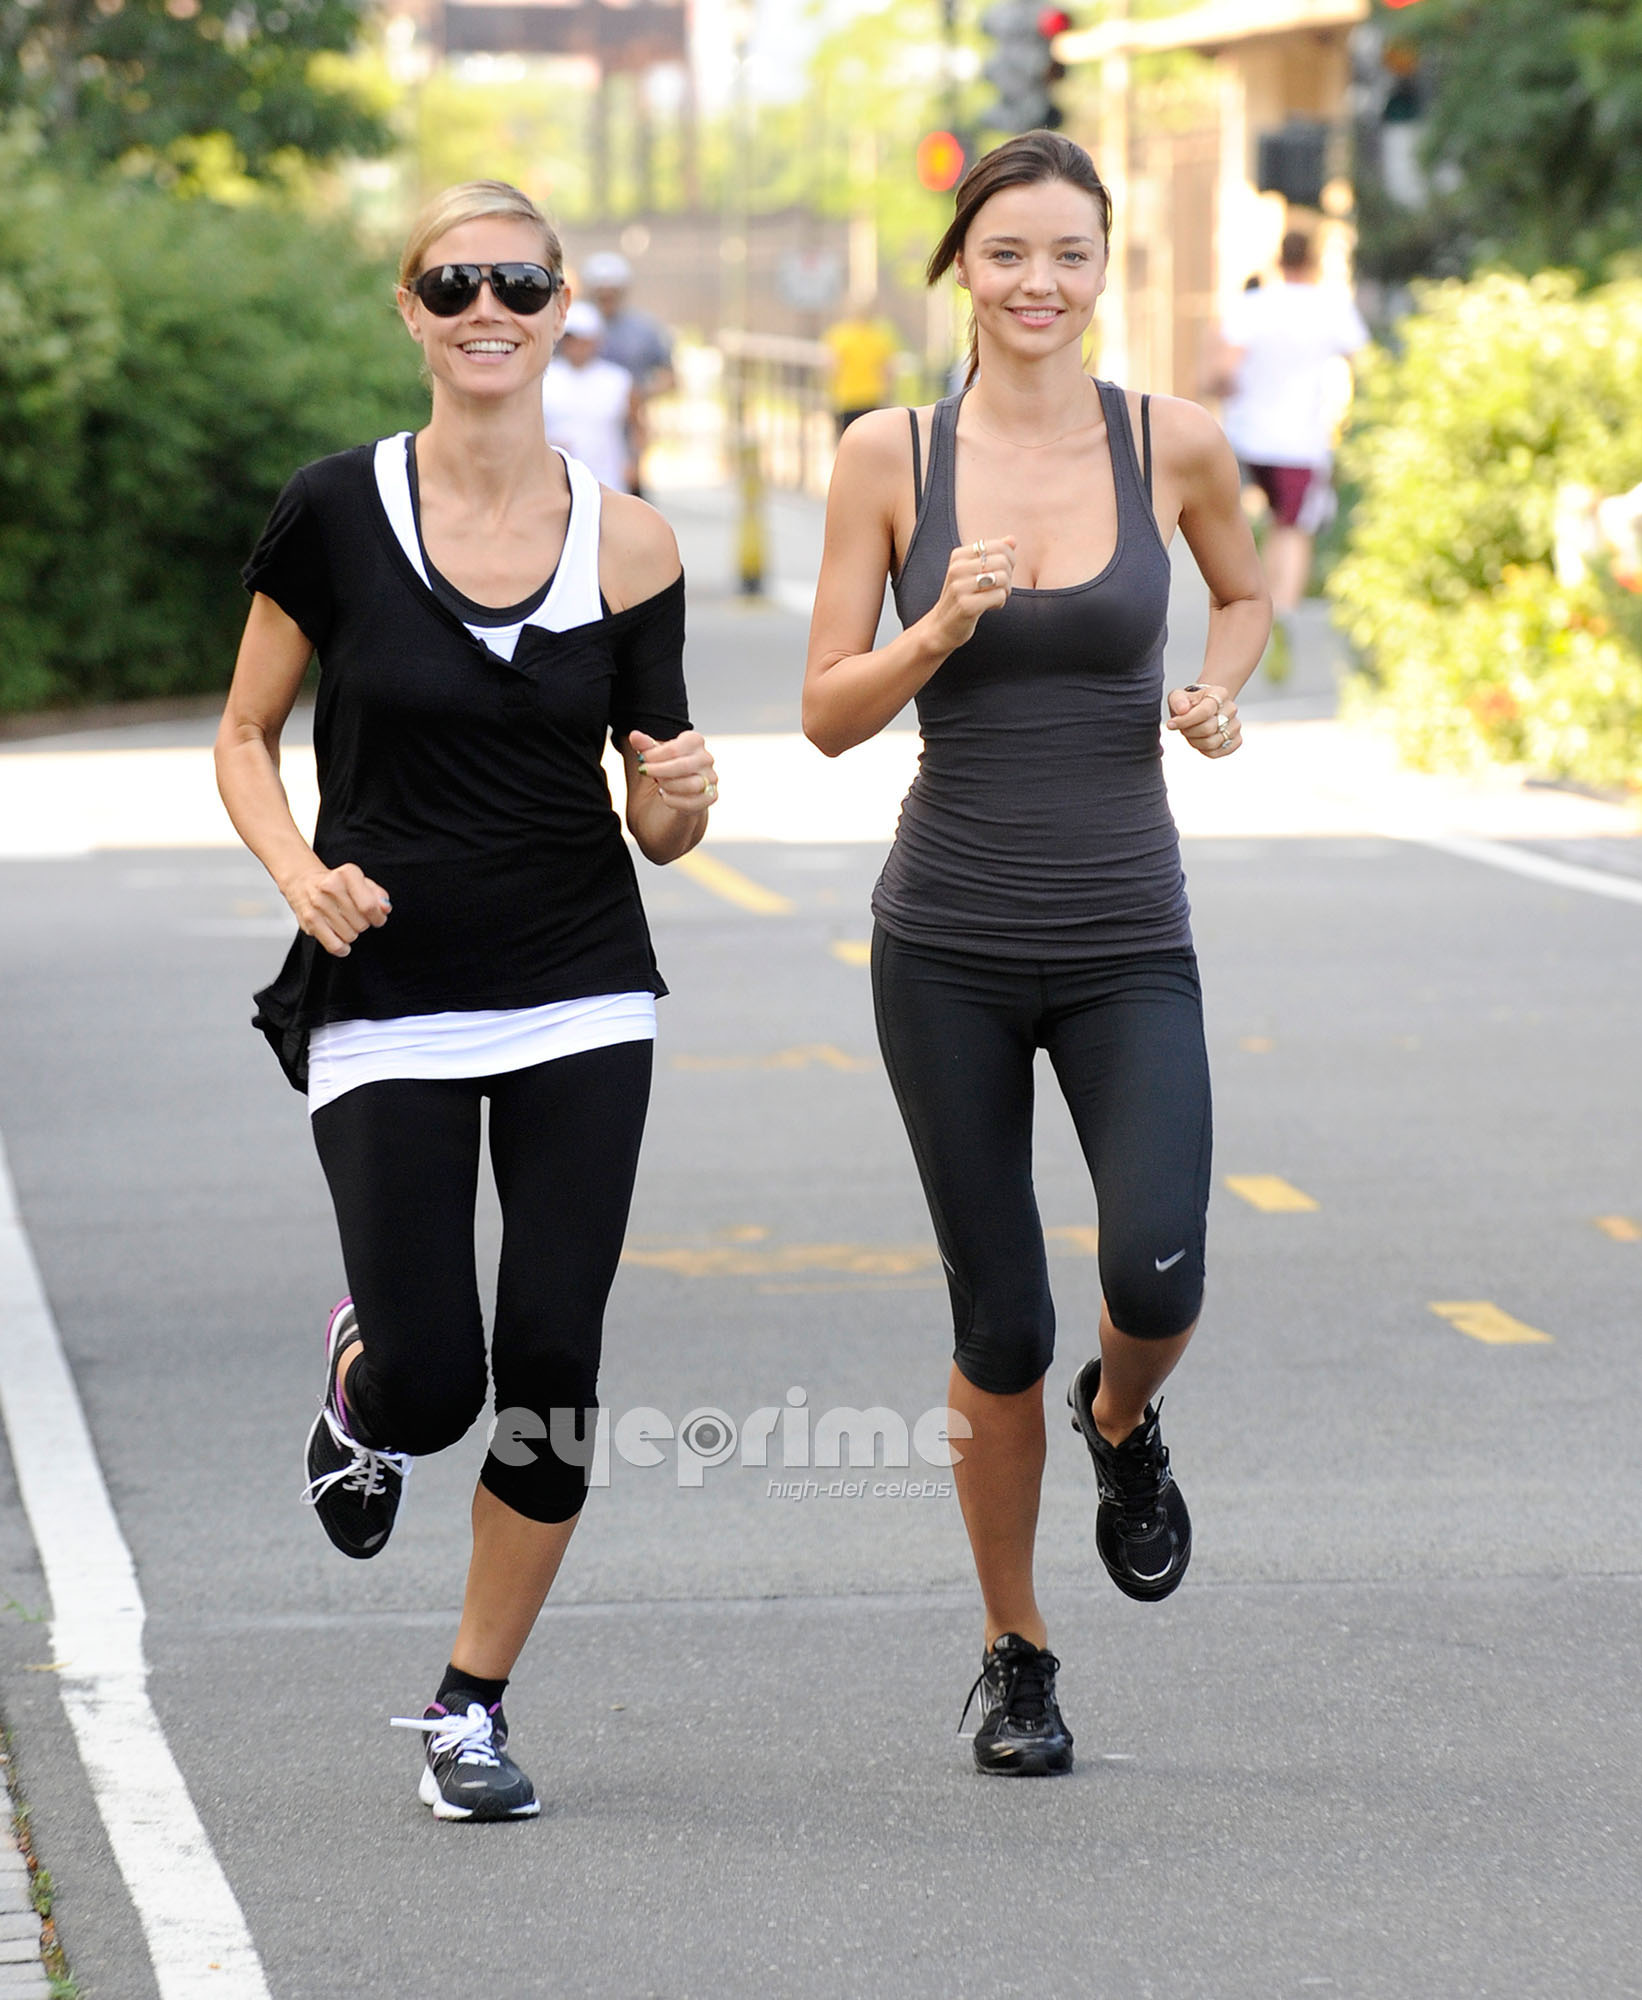 ����yiny�oz`/9�-yol_images miranda kerr joins heidi klum on her aol summer run in ny